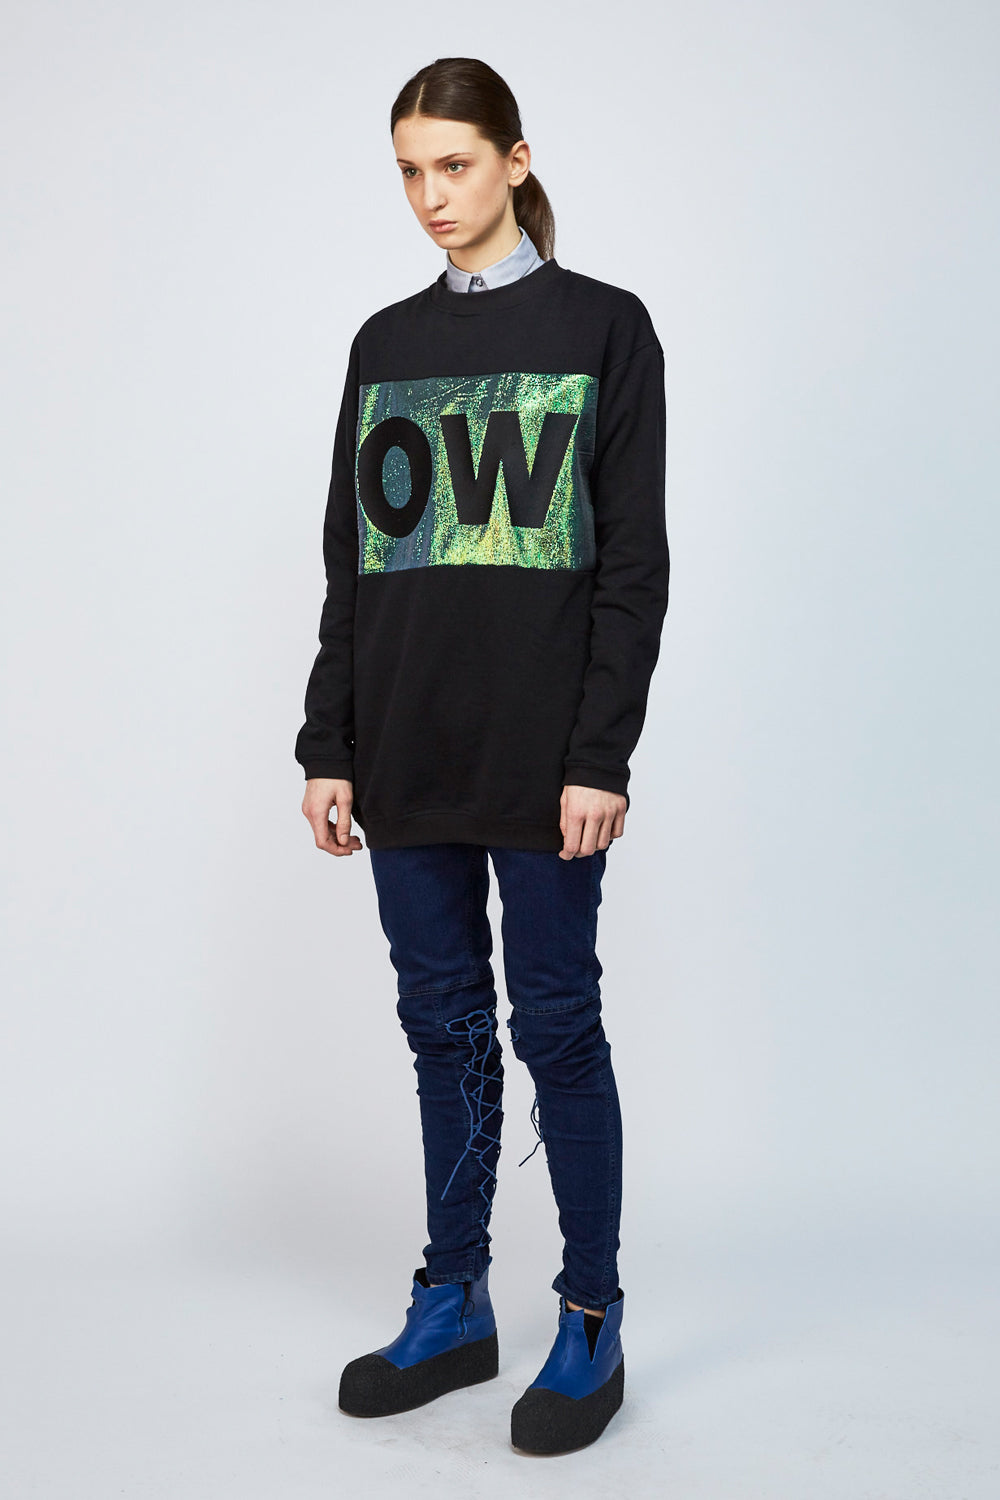 Sweater OBSERVER black - One Wolf